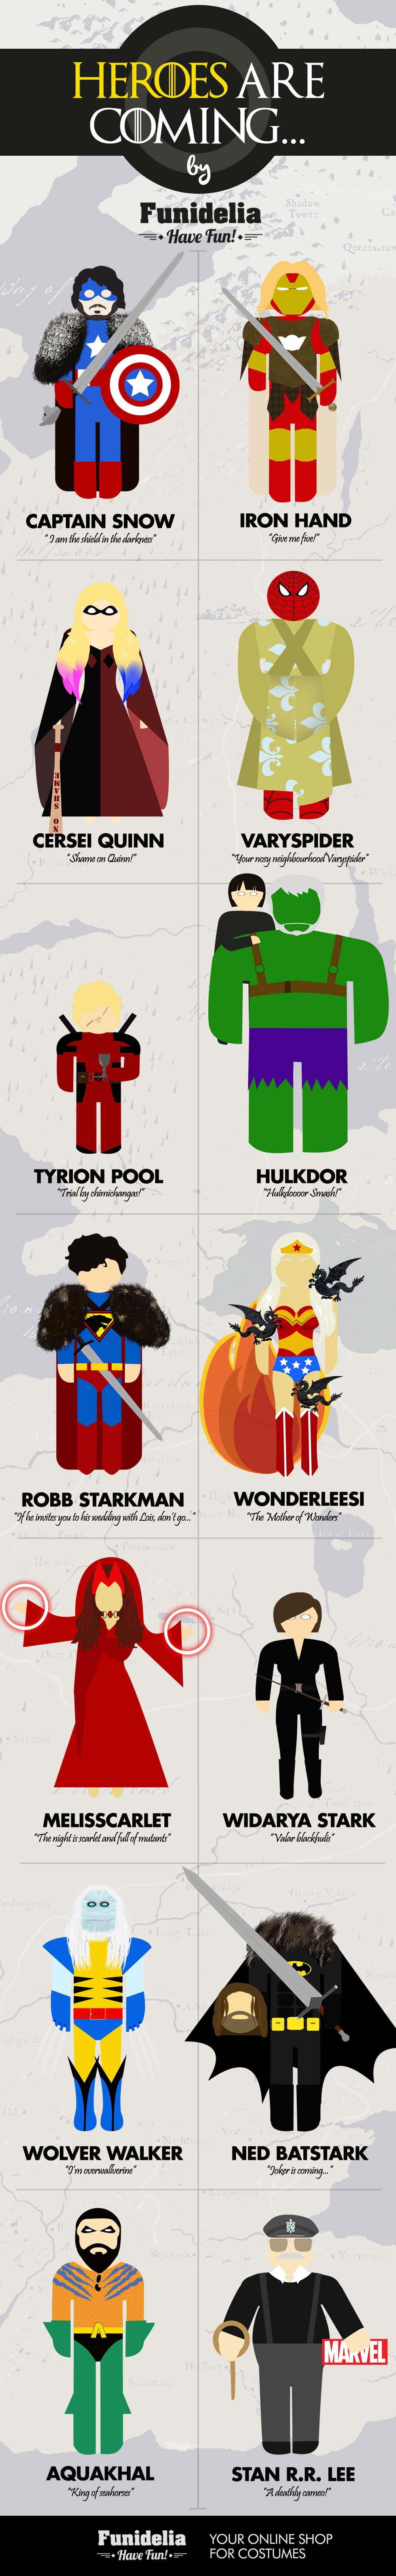 infographic-heroes-are-coming